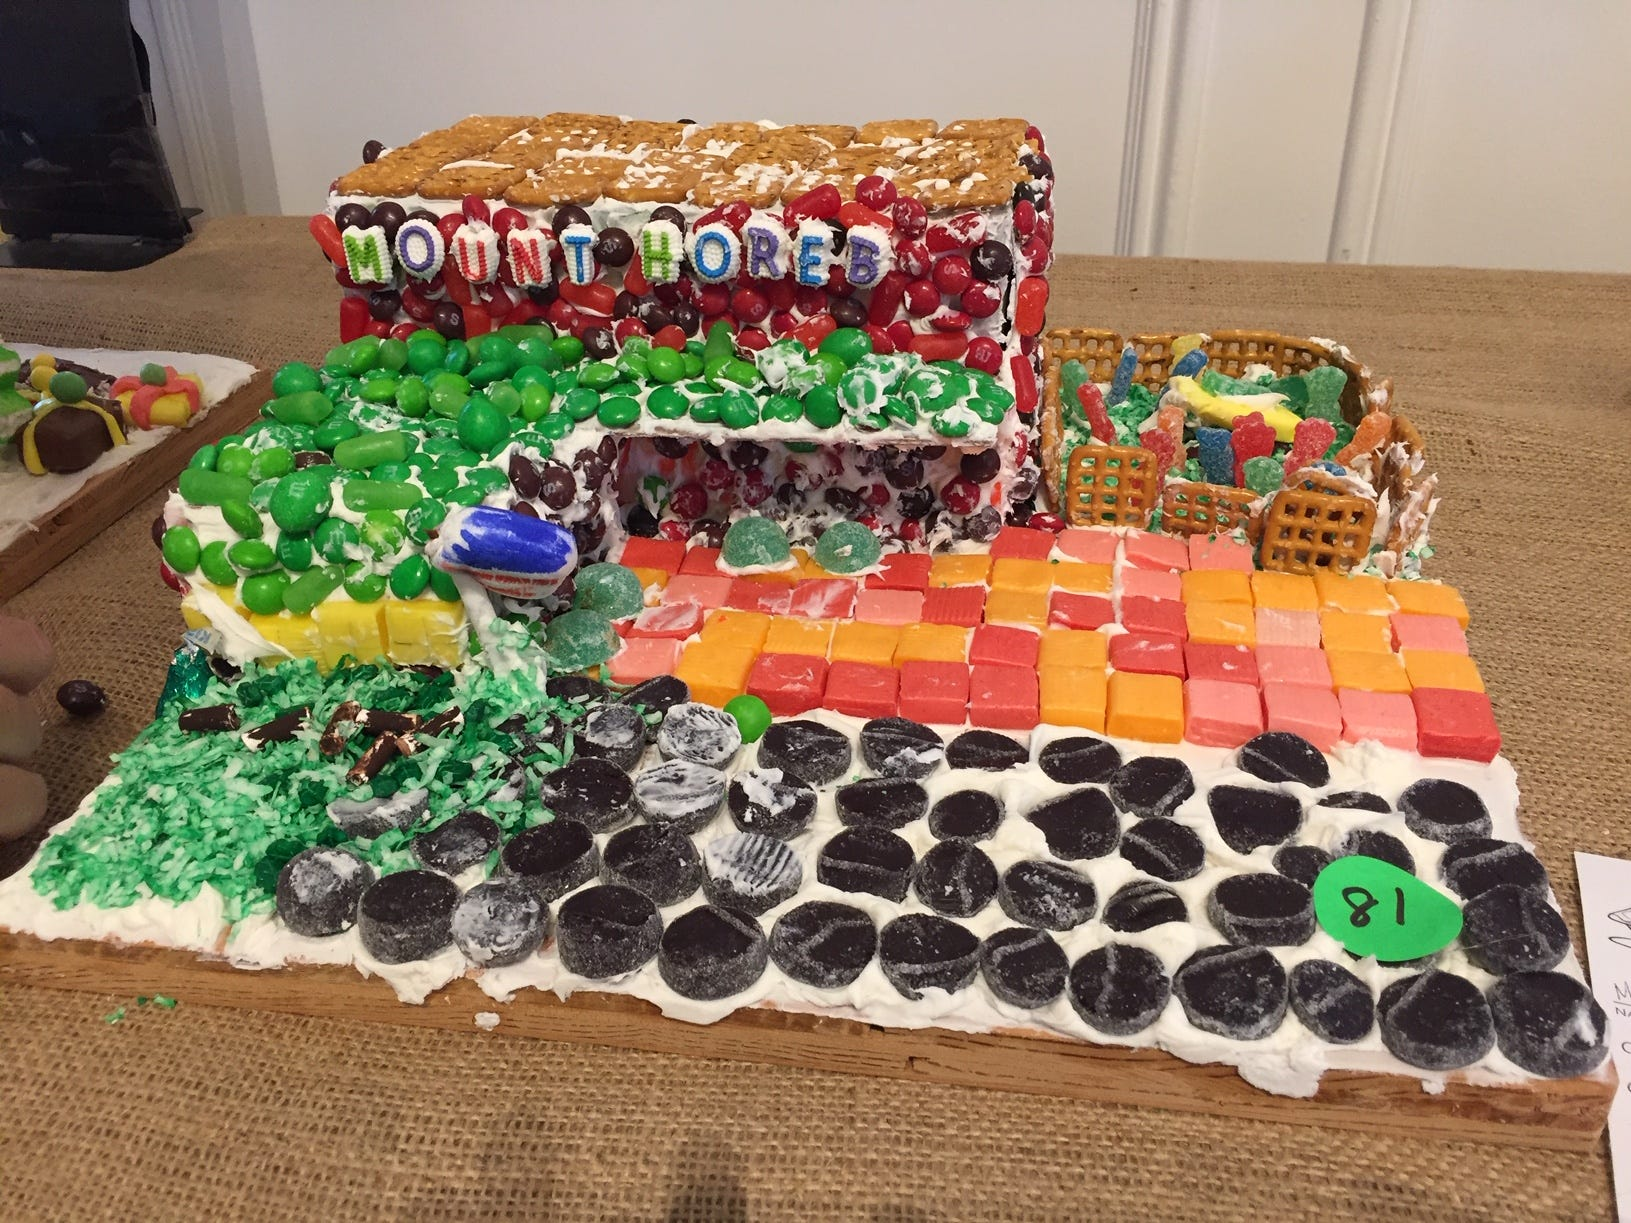 """We love our school, Mt. Horeb School!"" by Mrs. Maag/Mrs. Harris K class at Mt. Horeb School, Warren, at the 2018 Gingerbread Wonderland at the Frelinghuysen Arboretum. School category."